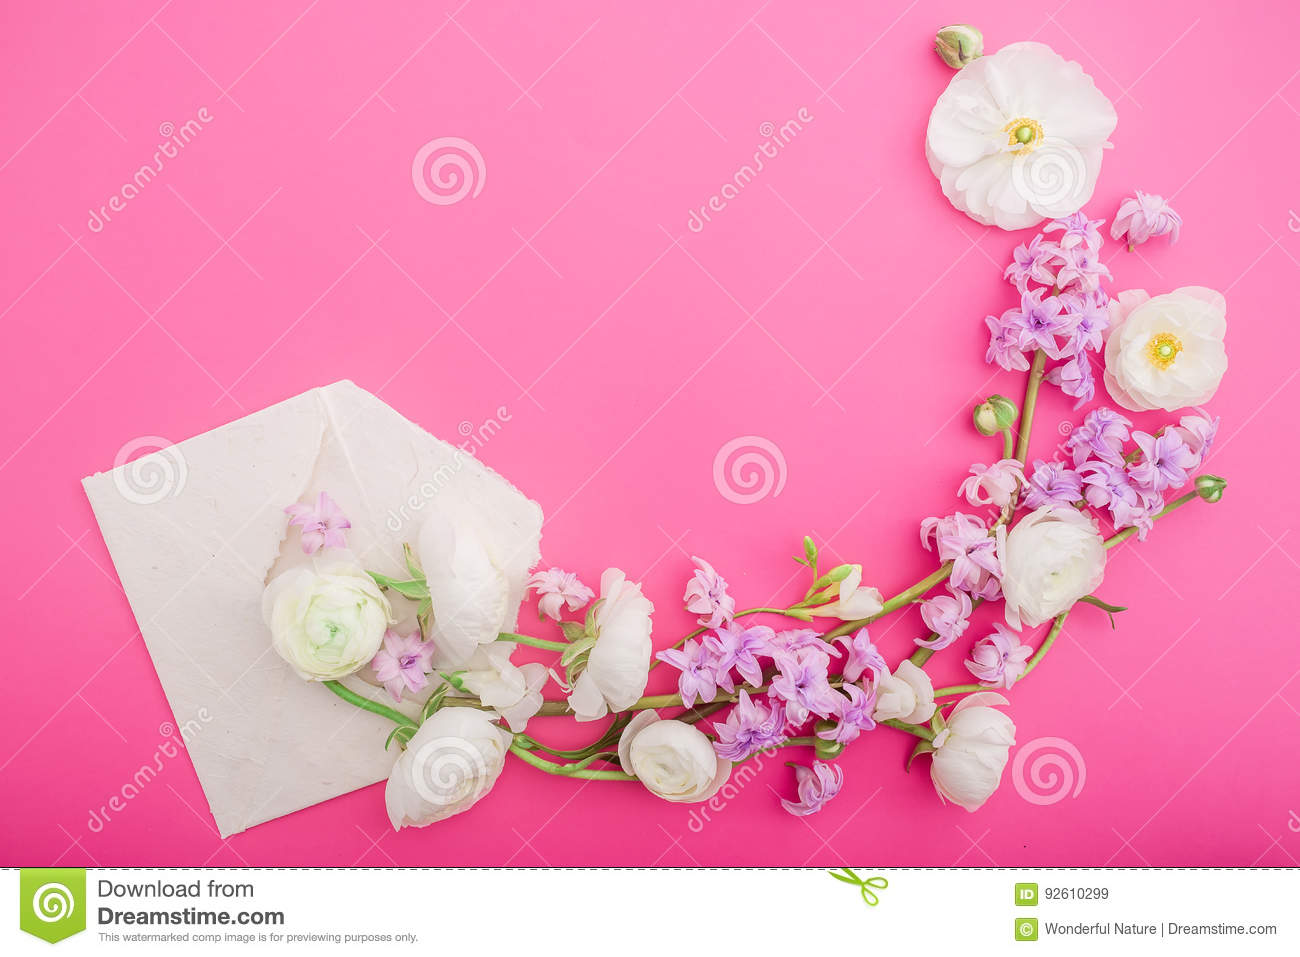 Flowers and paper envelope on pink background. Flat lay, top view. Floral round frame